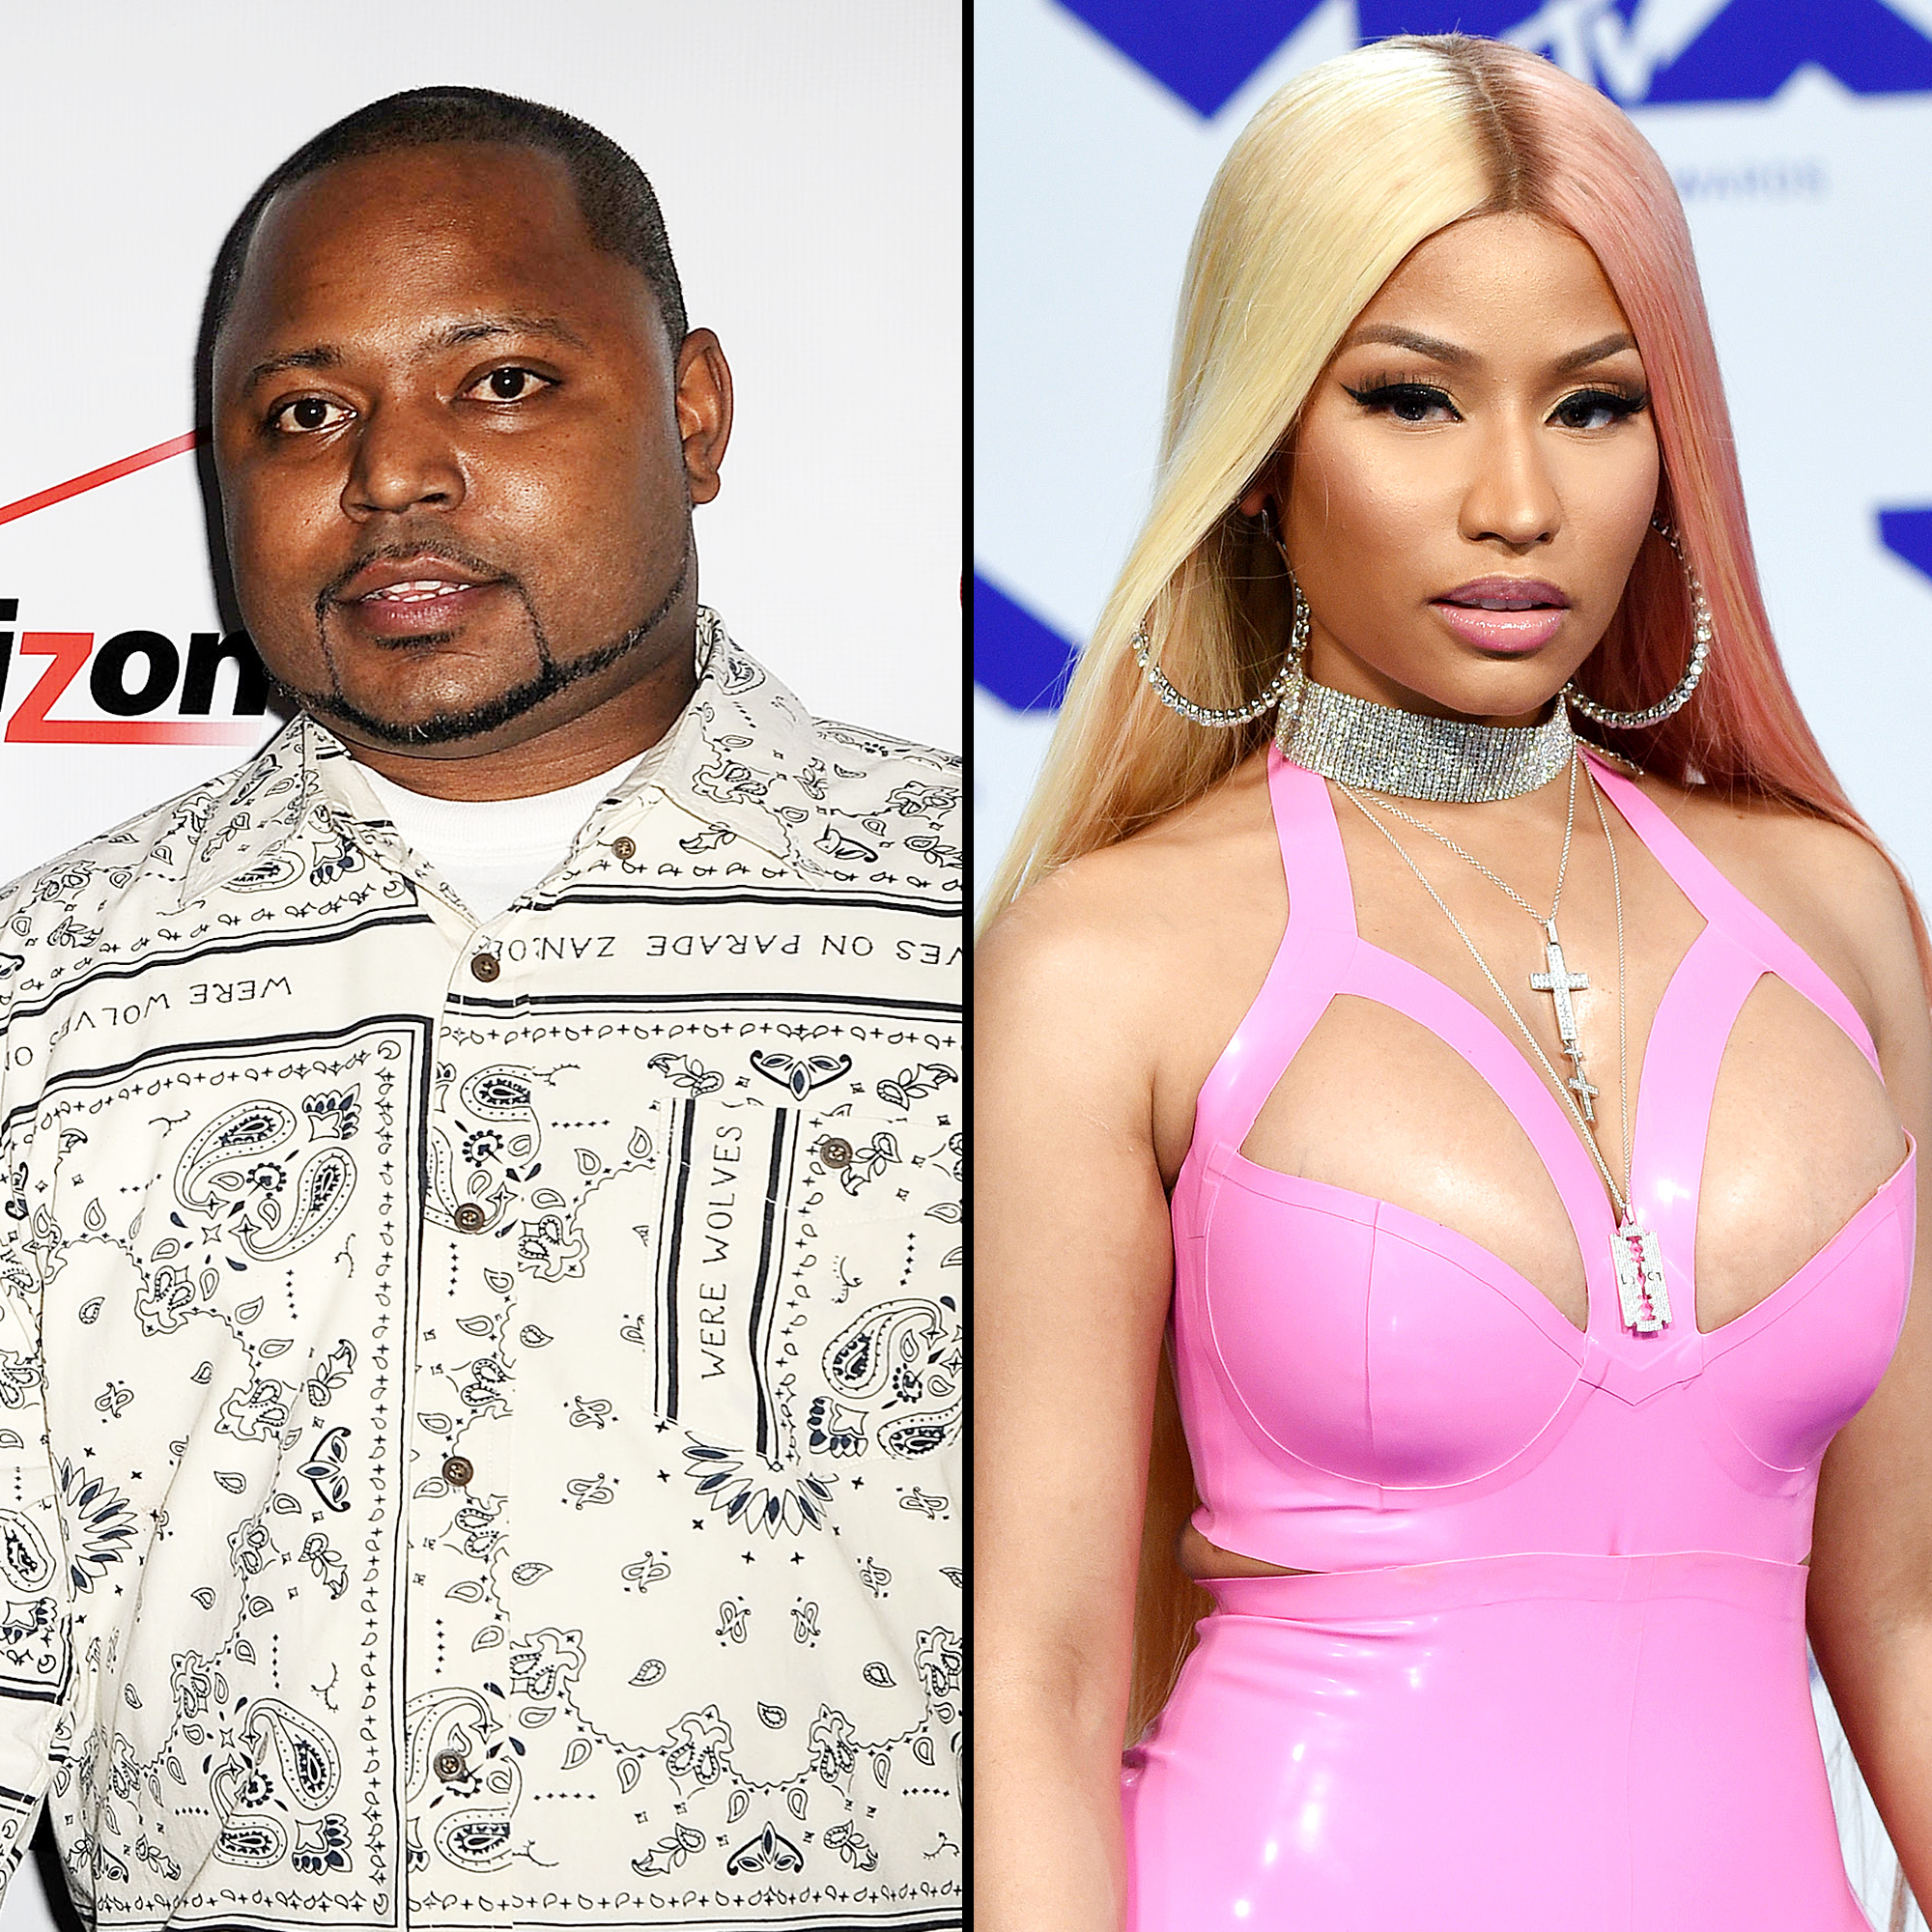 Nicki Minaj's Brother Convicted For Sexually Assaulting A Child